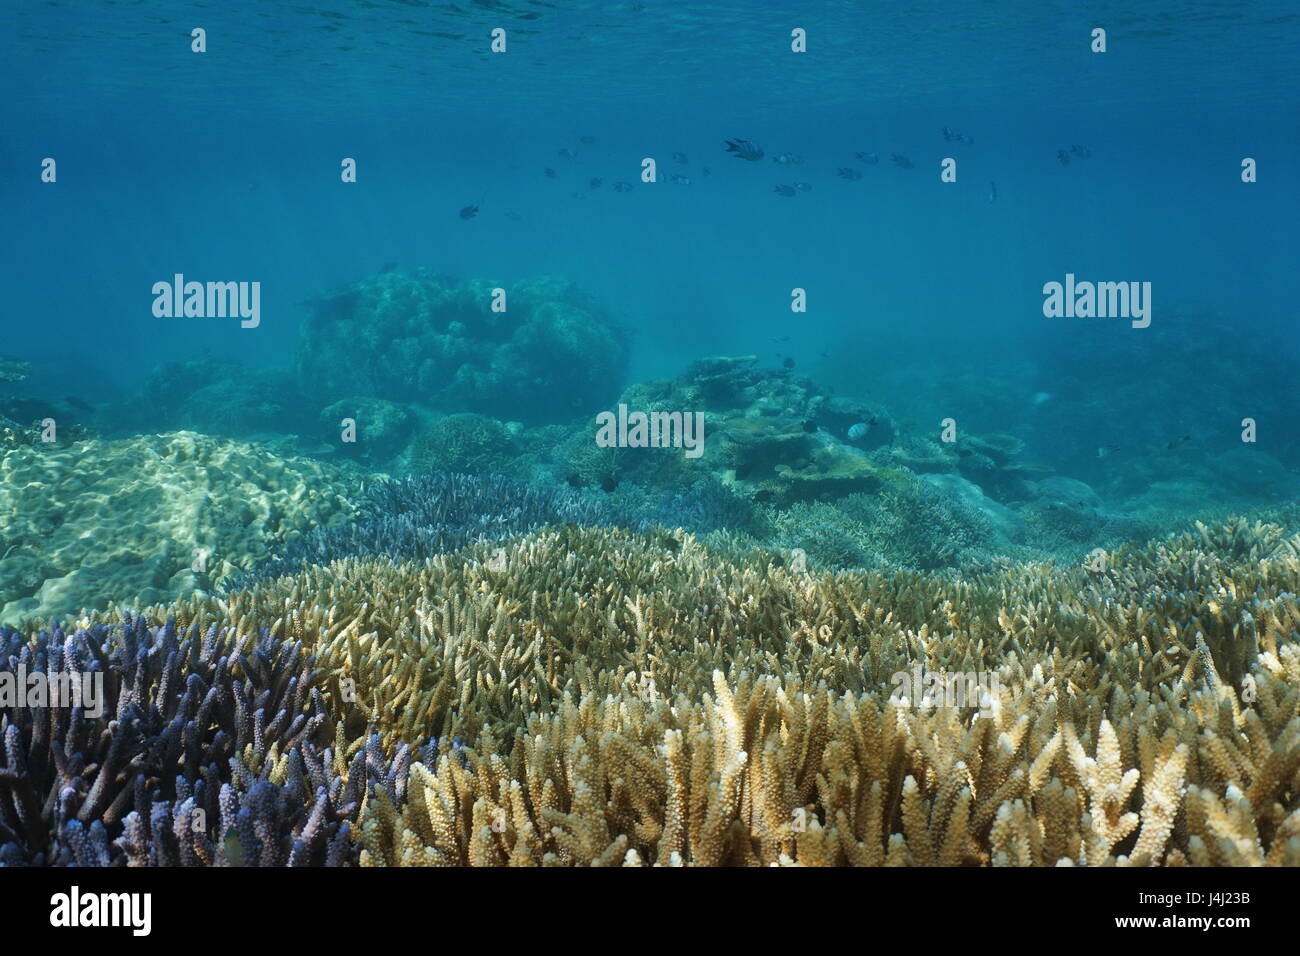 Underwater coral reef in healthy condition, south Pacific ocean, New Caledonia - Stock Image